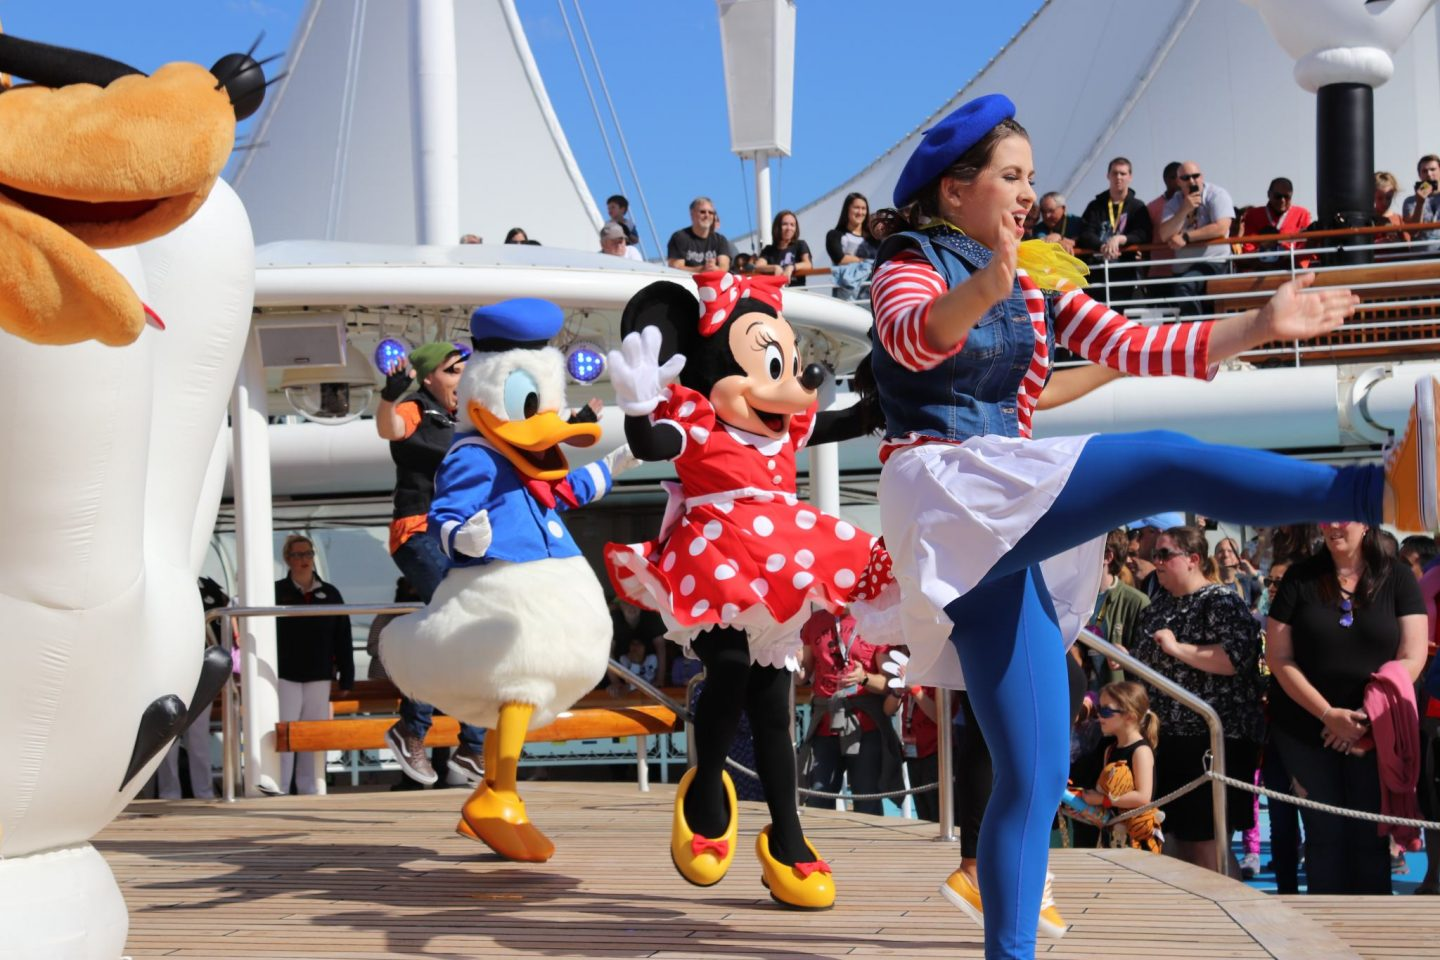 What to expect from a UK Staycation with 'Disney Magic at Sea' 2021